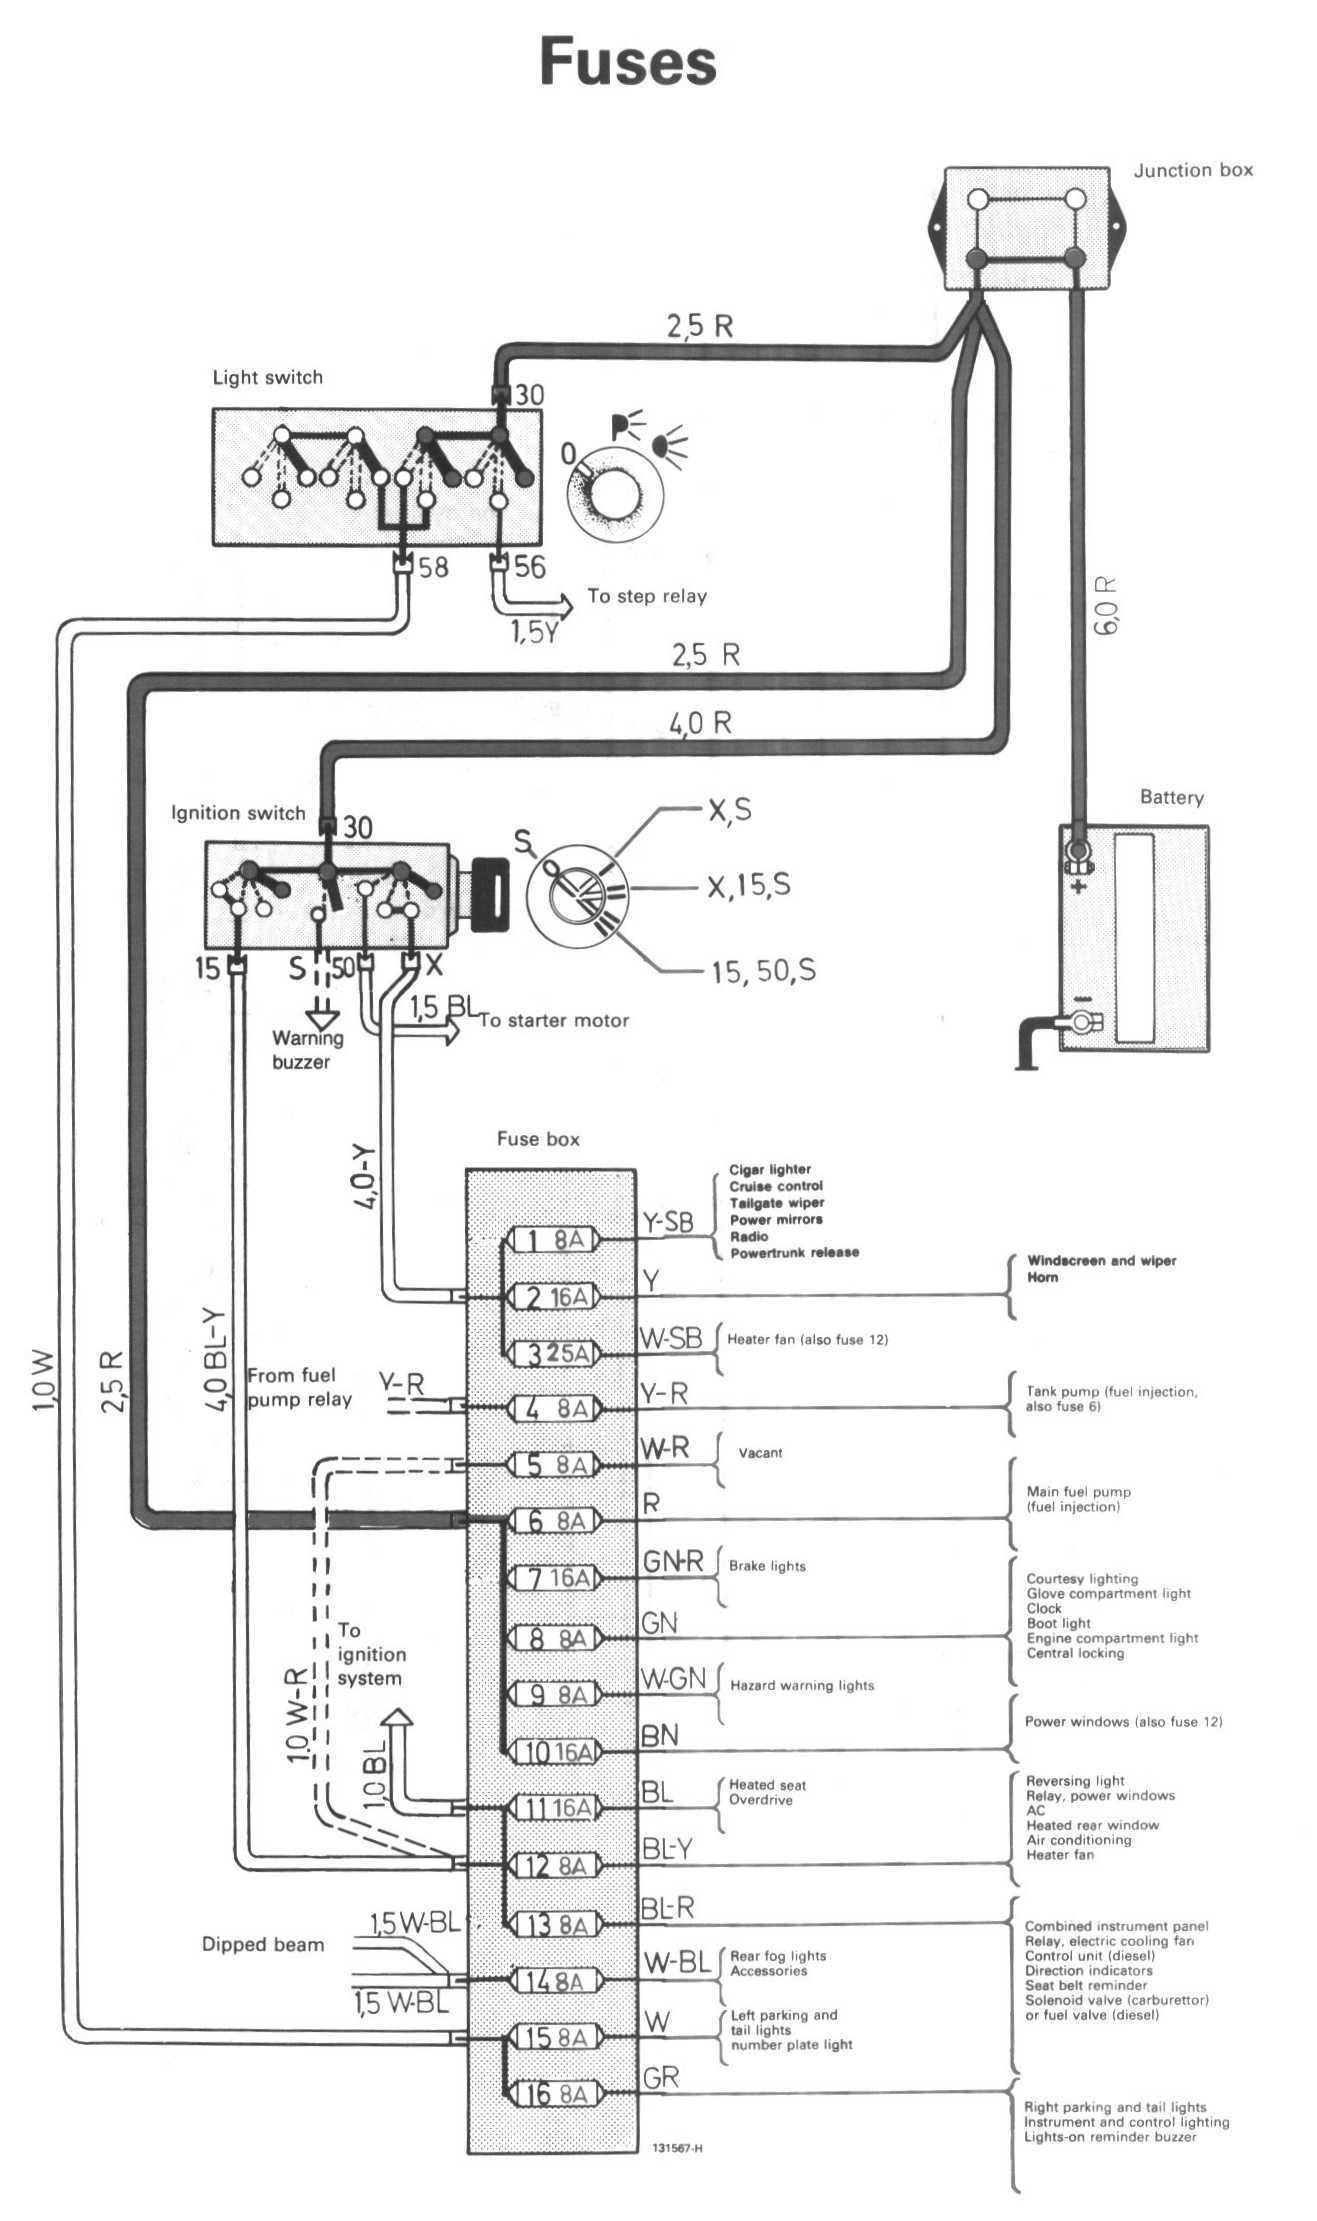 Diagram 2006 Volvo Fuse Diagram Full Version Hd Quality Fuse Diagram Diagramlewv Lenottidicabiria It